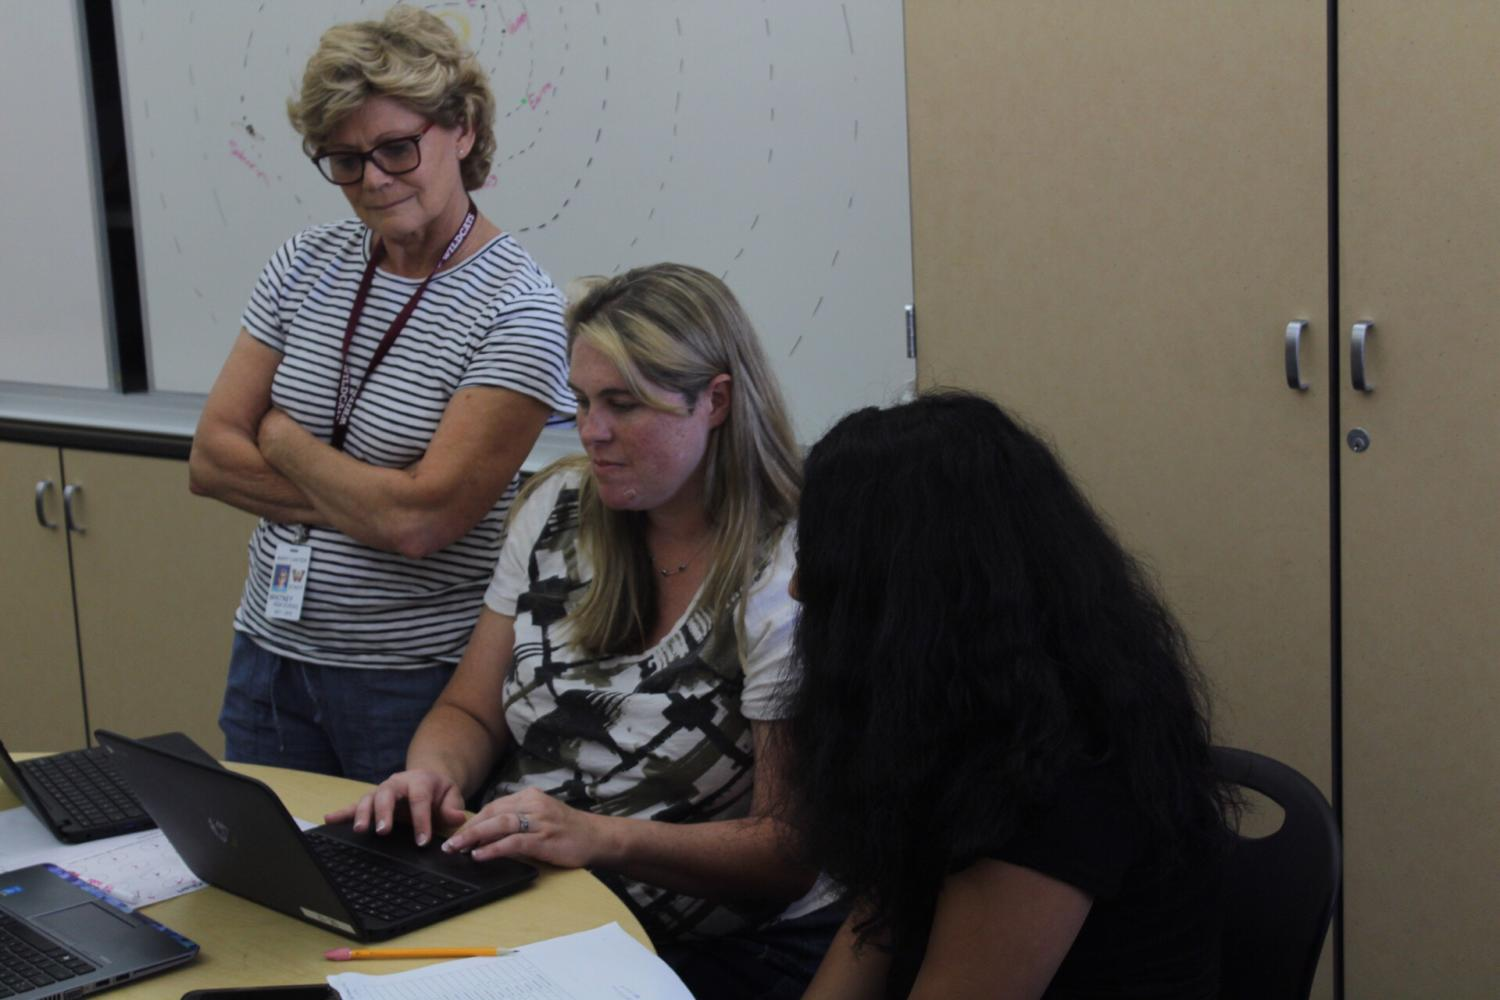 During fifth period ILS class, Pam Shugarte instructs a student on their chromebook. Photo by Coleton Matics.